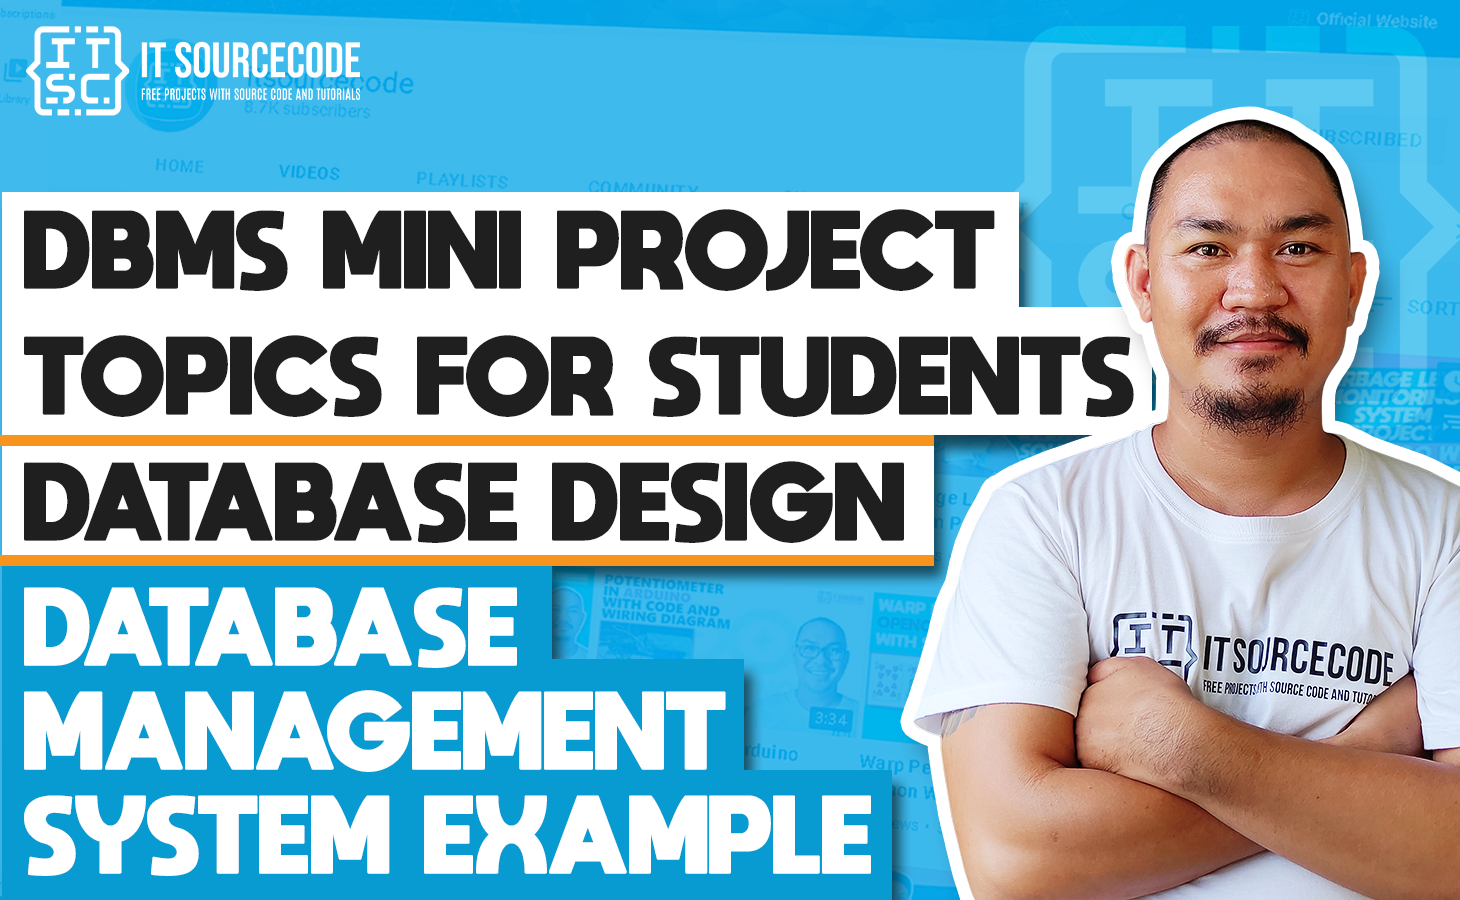 DBMS Mini Project Topics With Source Code For Students 2021